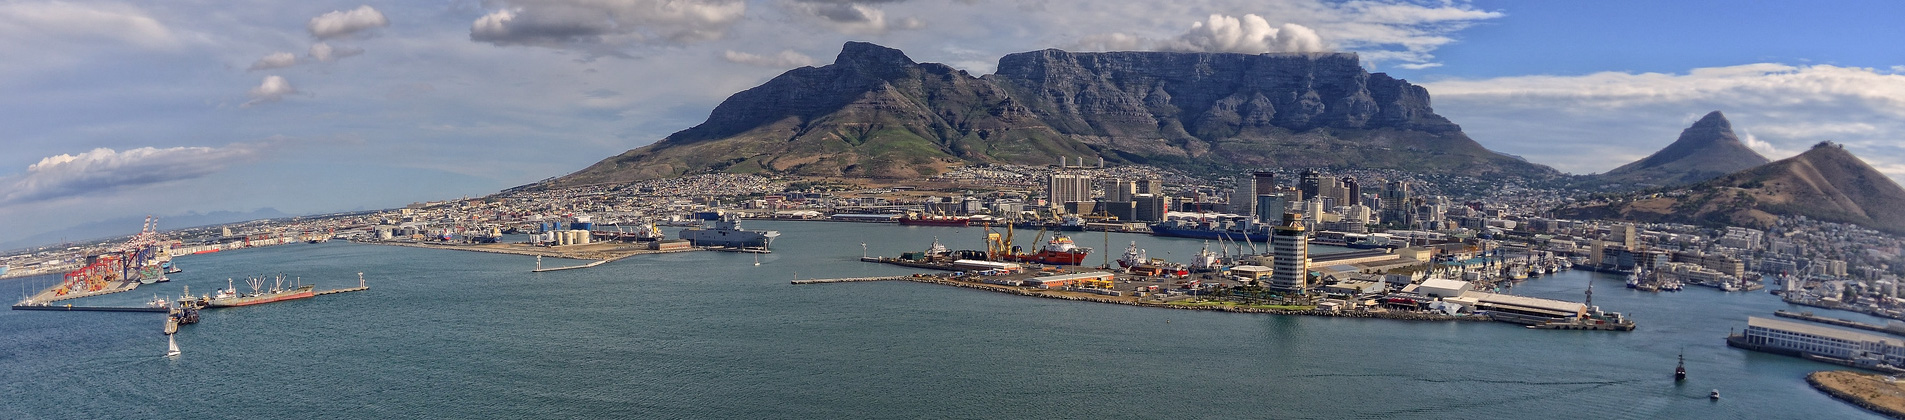 Port of Cape Town Aerial View